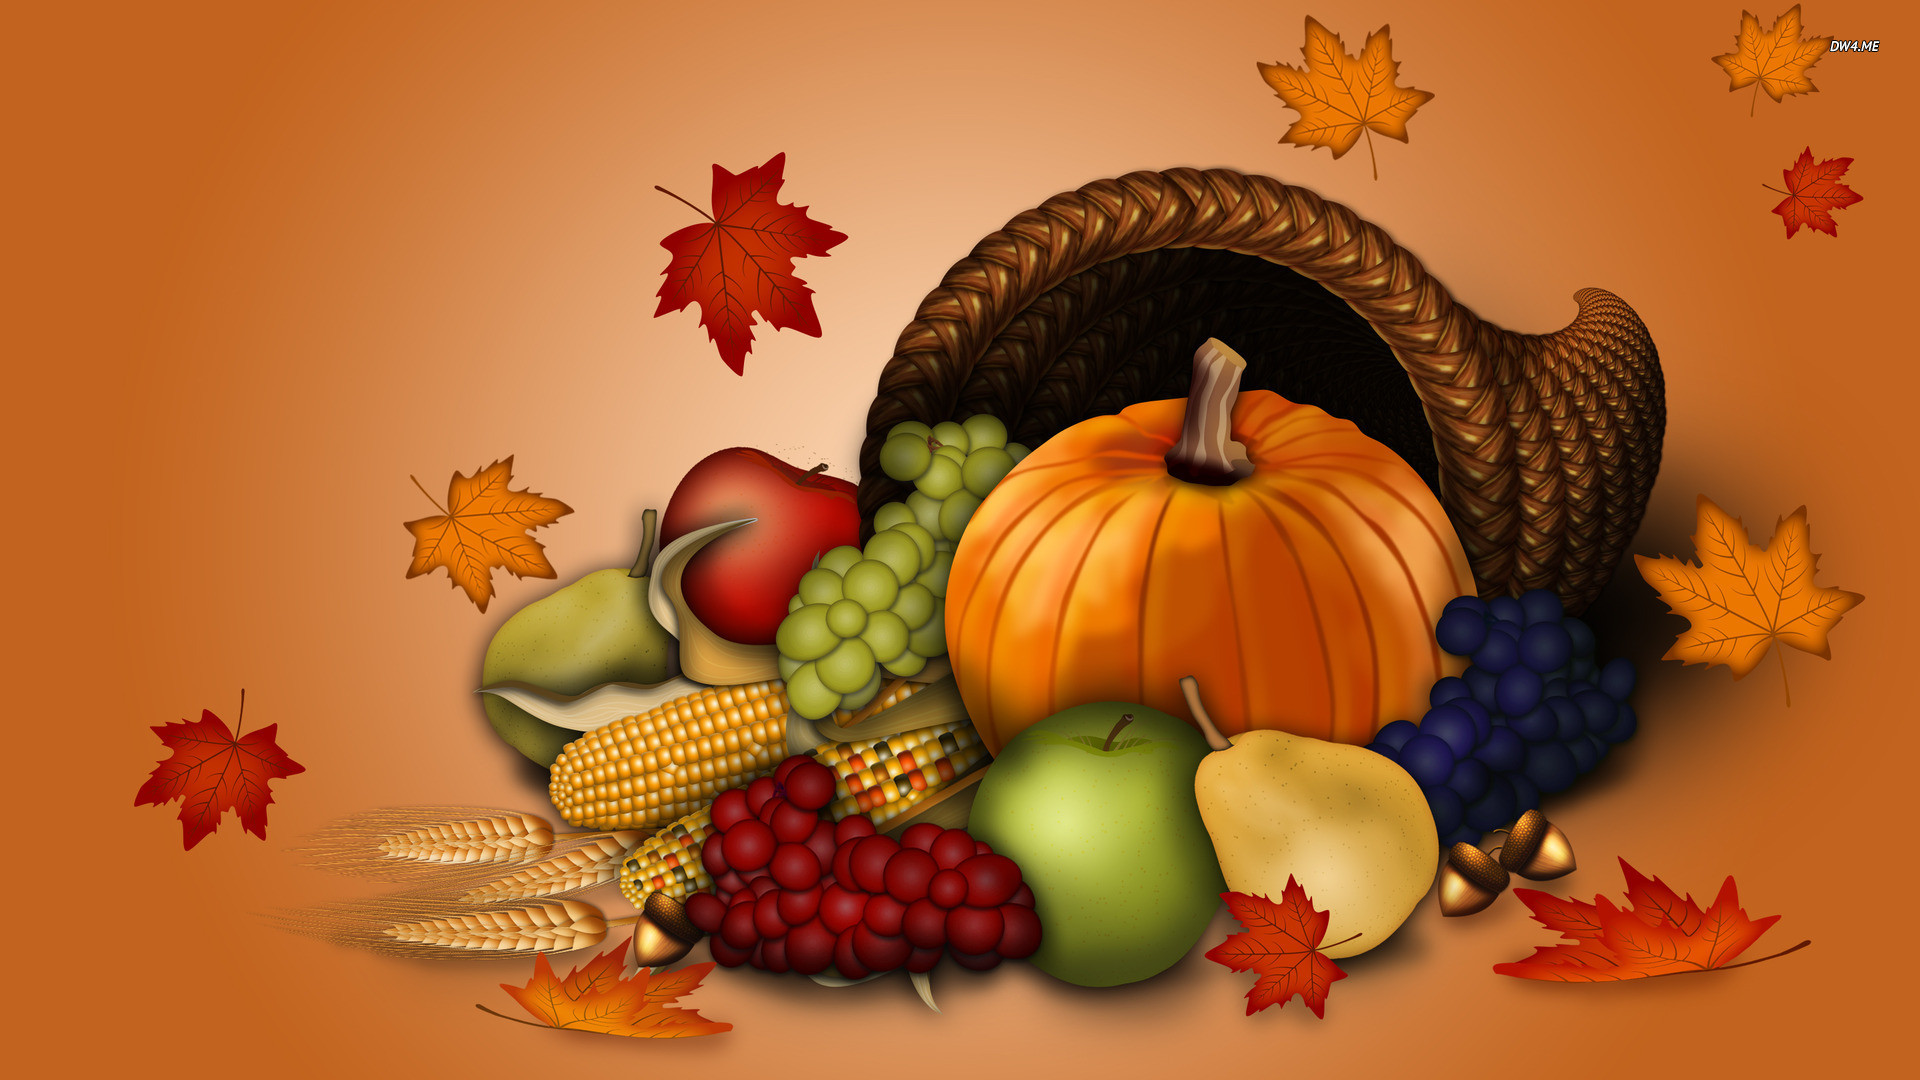 62 Thanksgiving Screensavers Wallpapers on WallpaperPlay 1920x1080